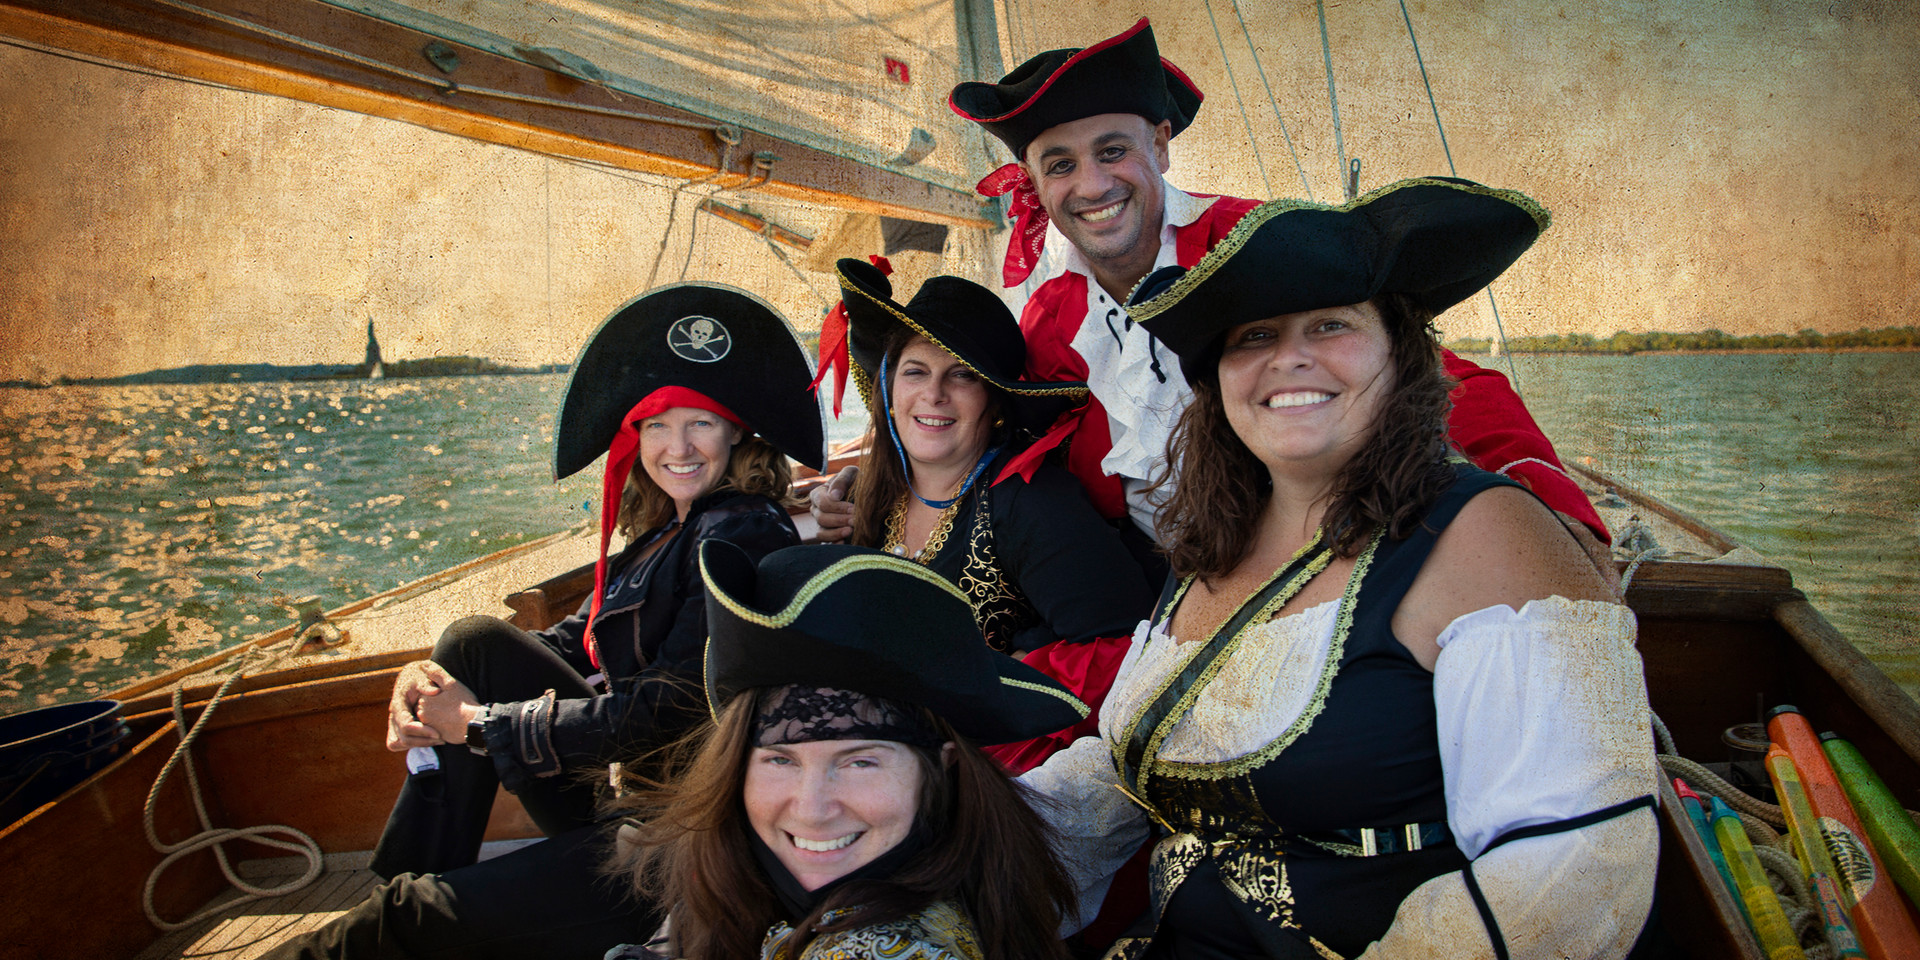 Ben and his PIRATE wenches